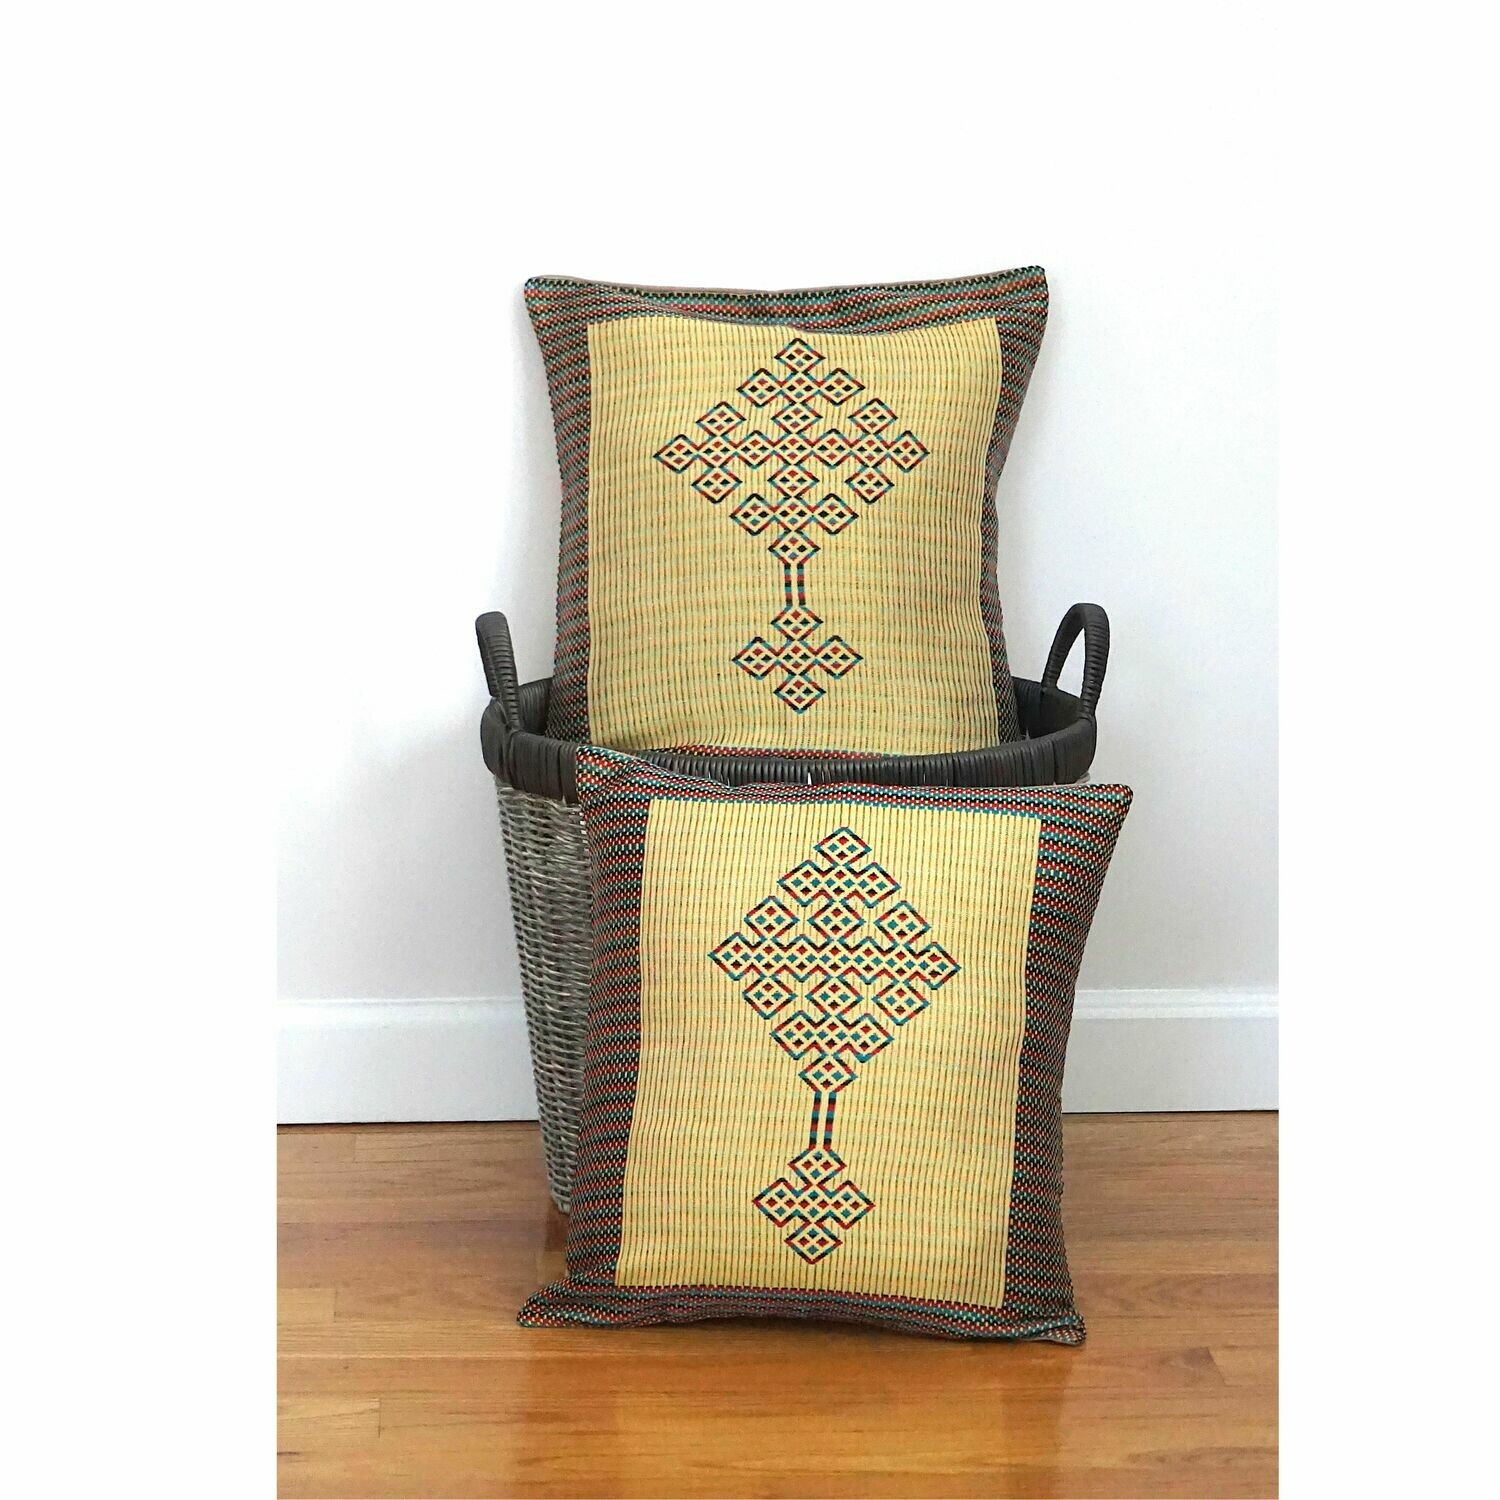 (1) Accent Throw Pillow For Sofa Bed Coptic Cross Pattern Made Cotton, Rayon, Linen